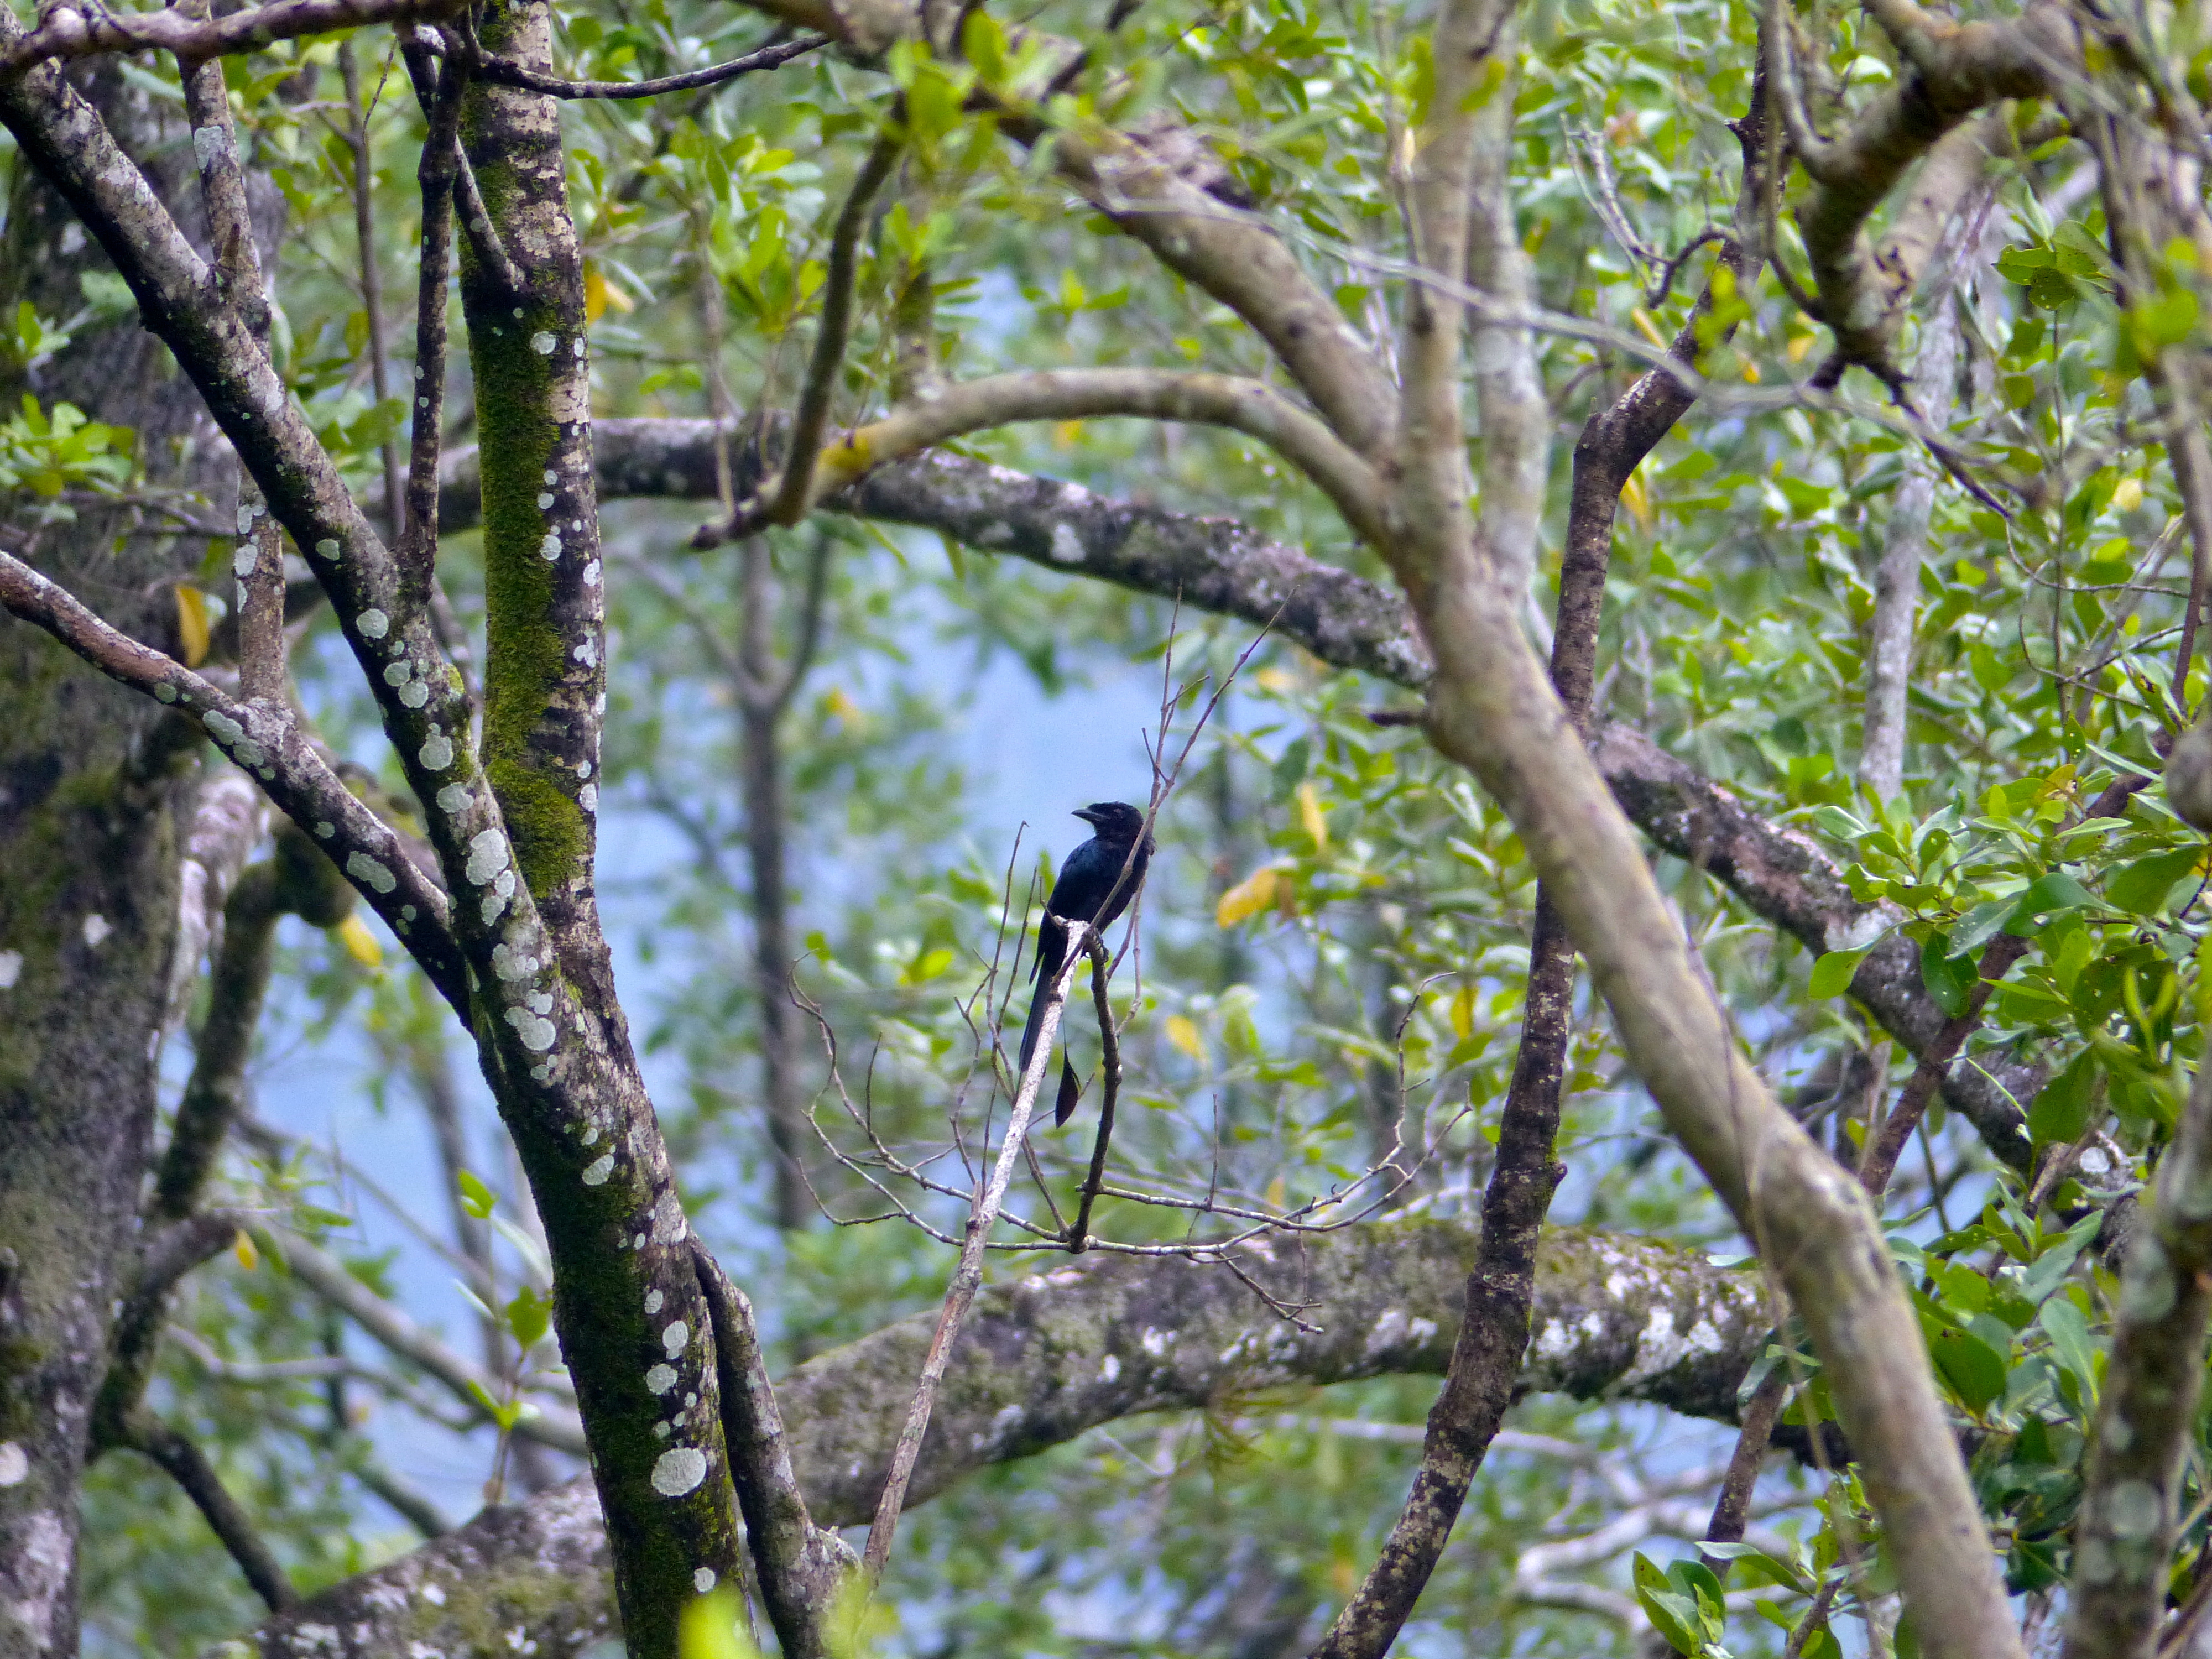 Image of Greater racket-tailed drongo